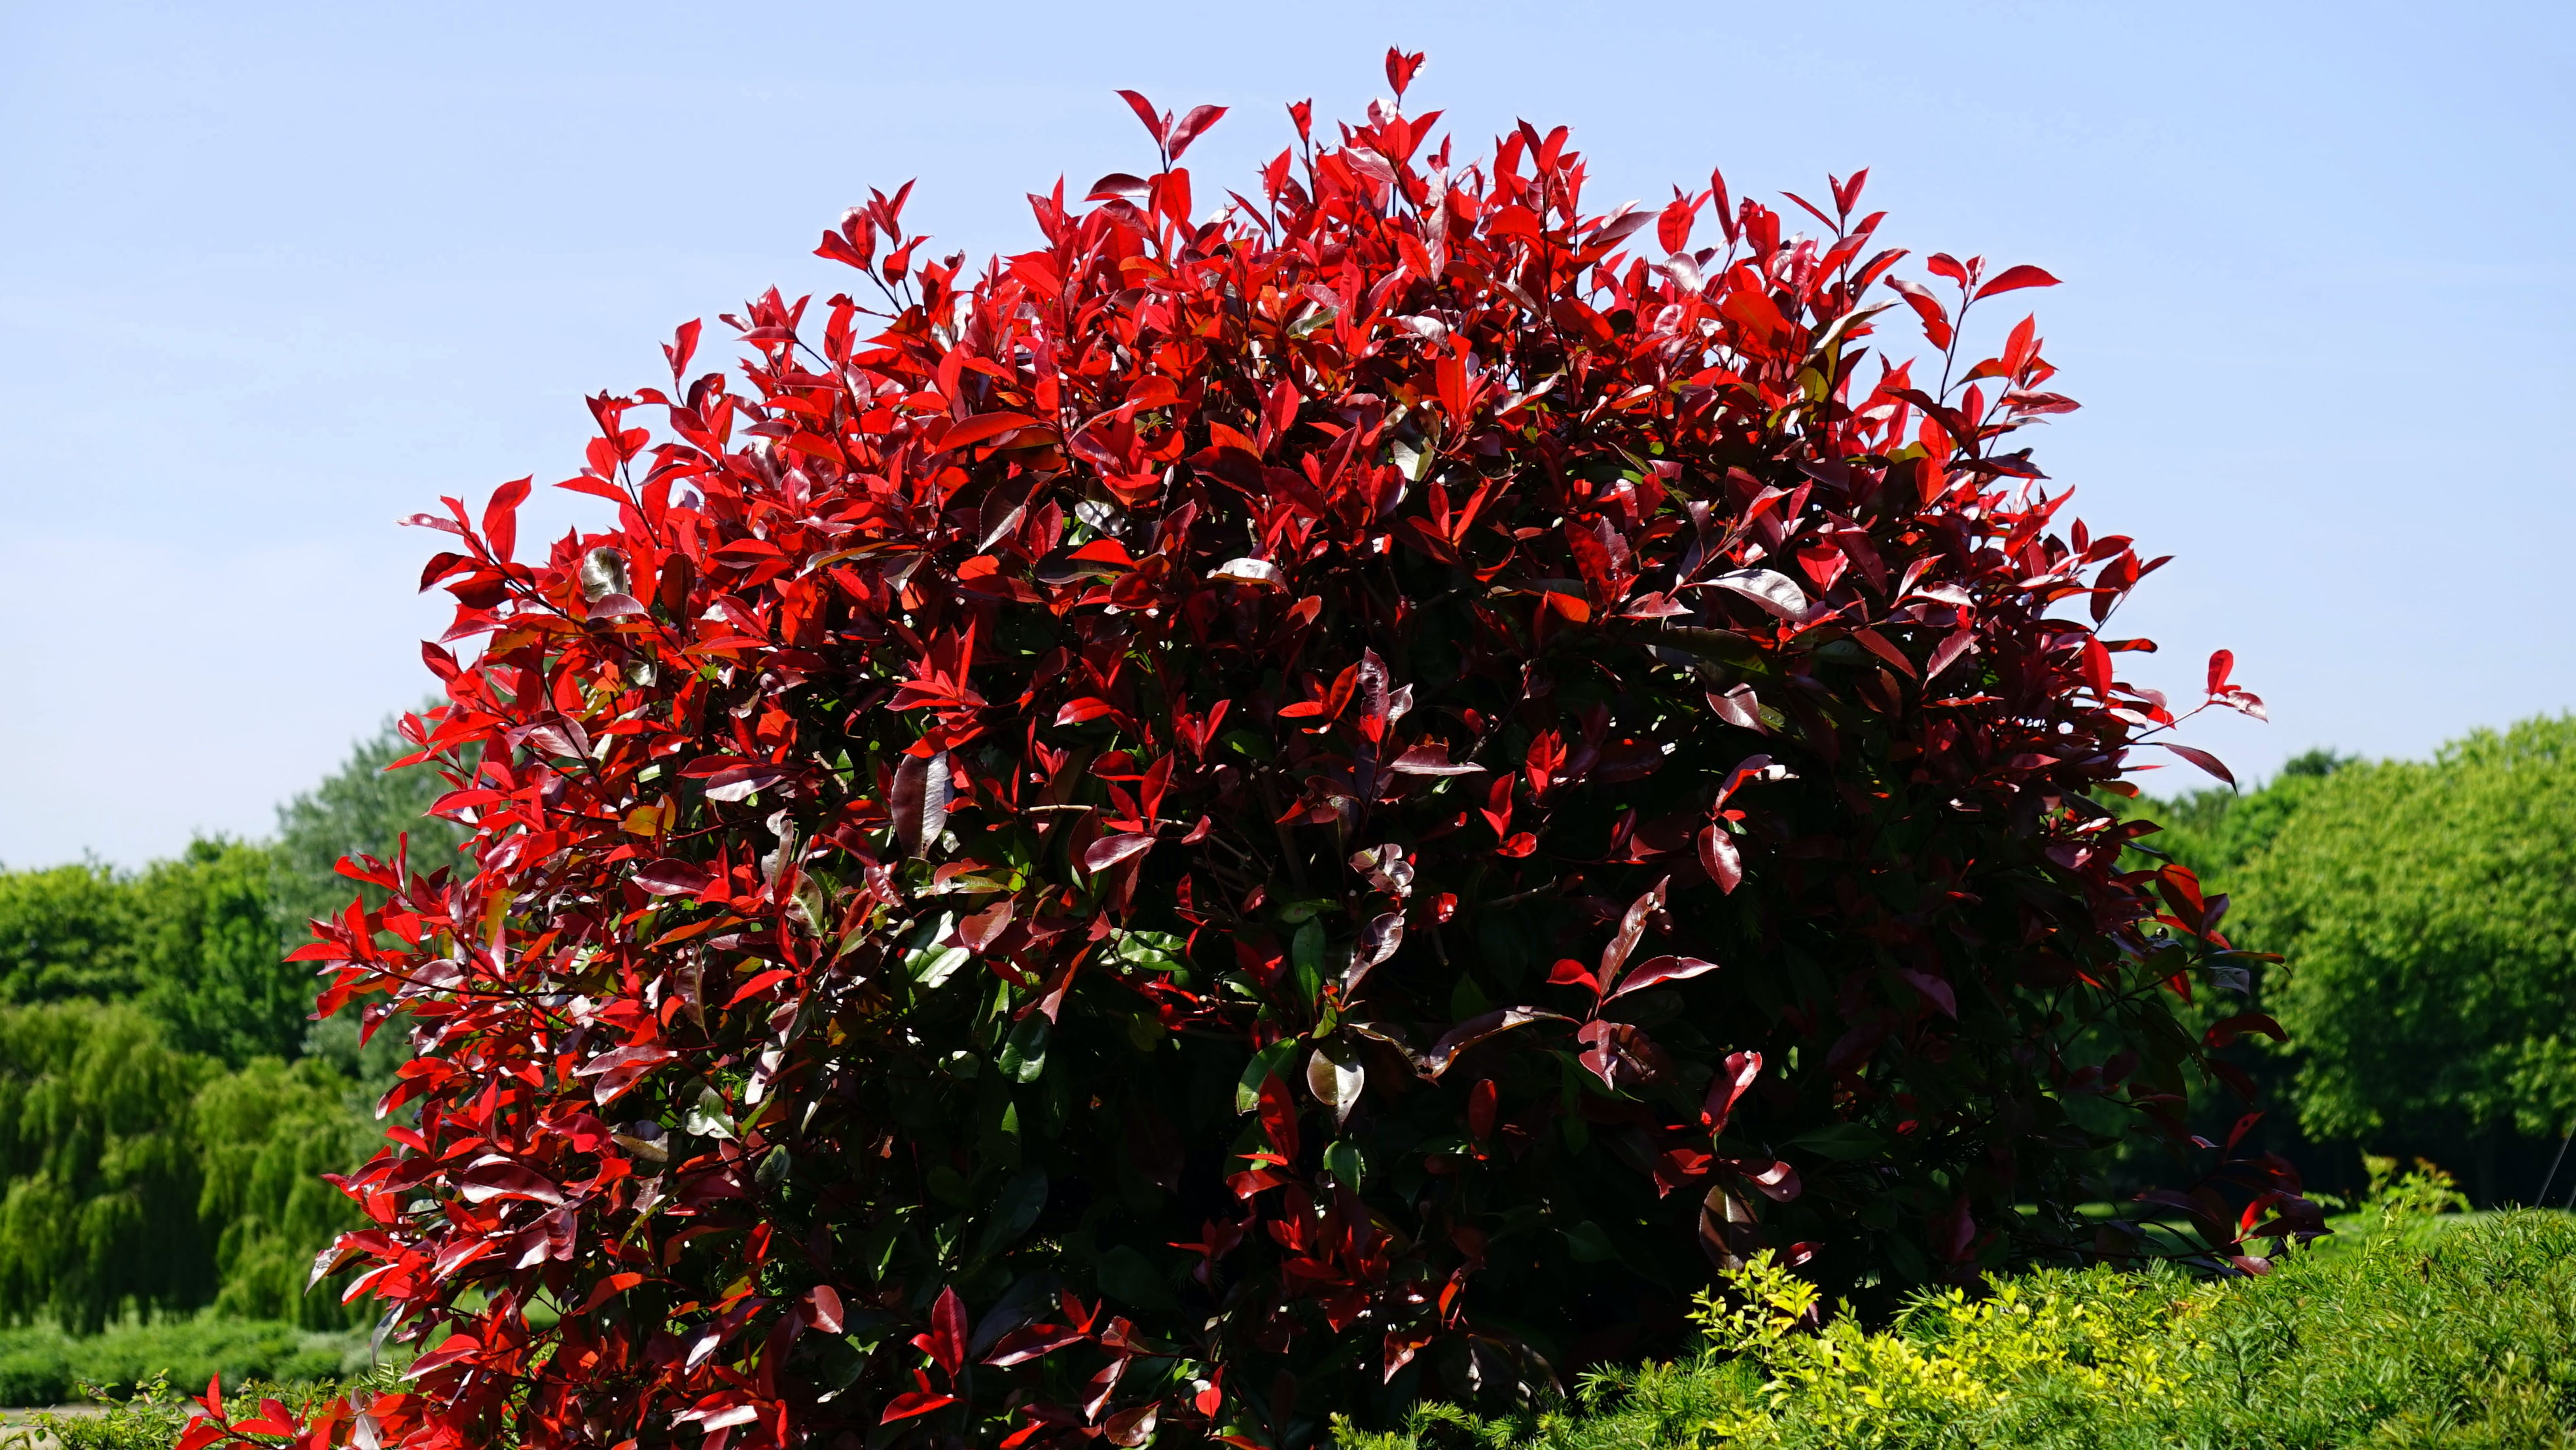 Red Leafed Plant Surrounded With Trees